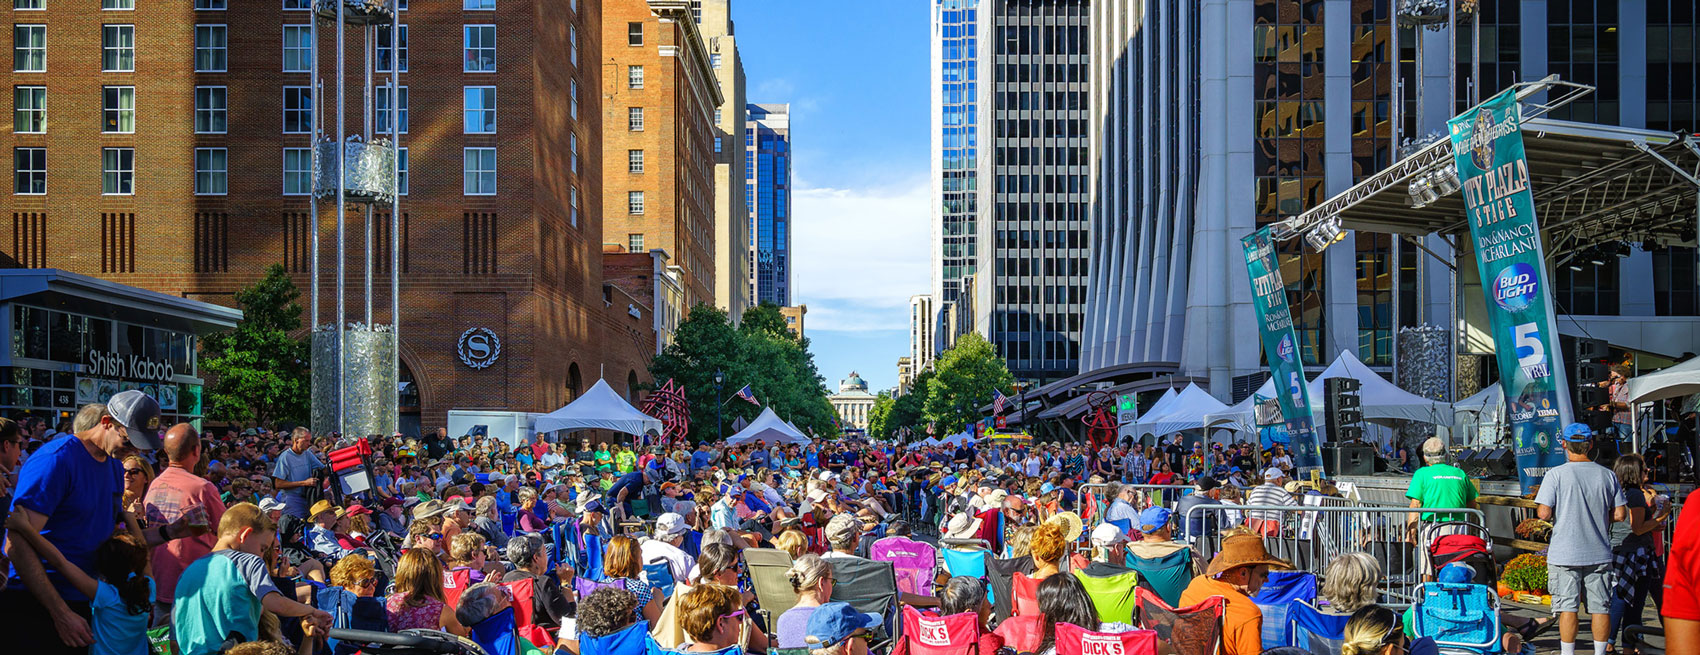 Christmas Events In Raleigh Nc 2021 Events Calendar Downtown Raleigh Nc